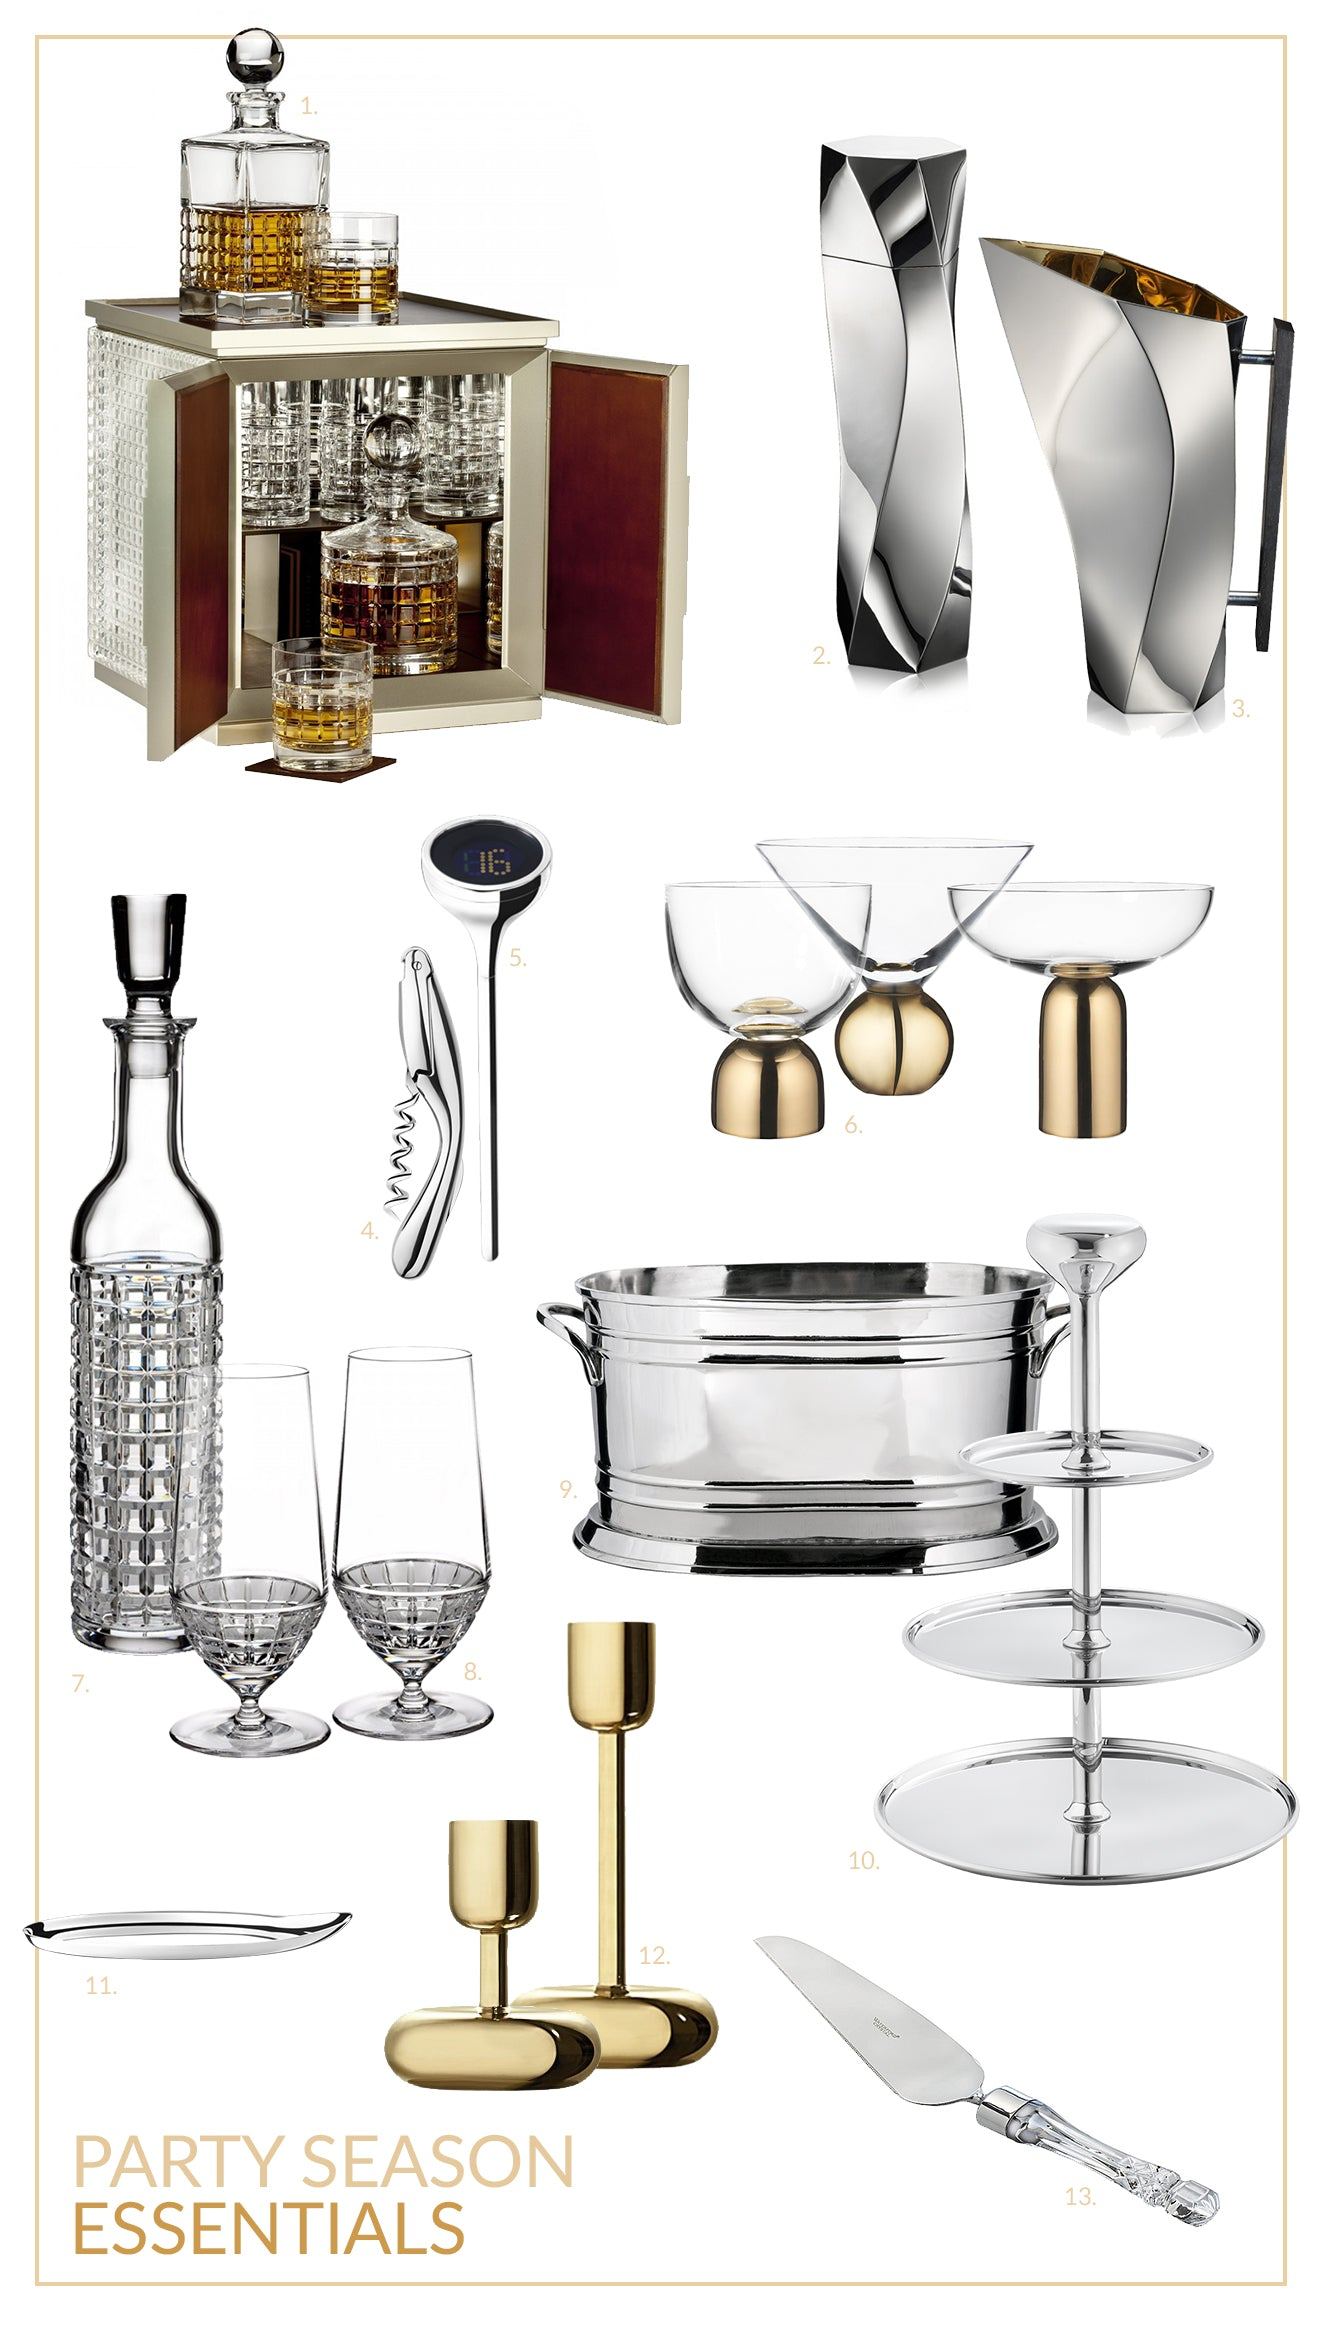 Luxury party essentials crystal glassware tableware decorations London desktop bar